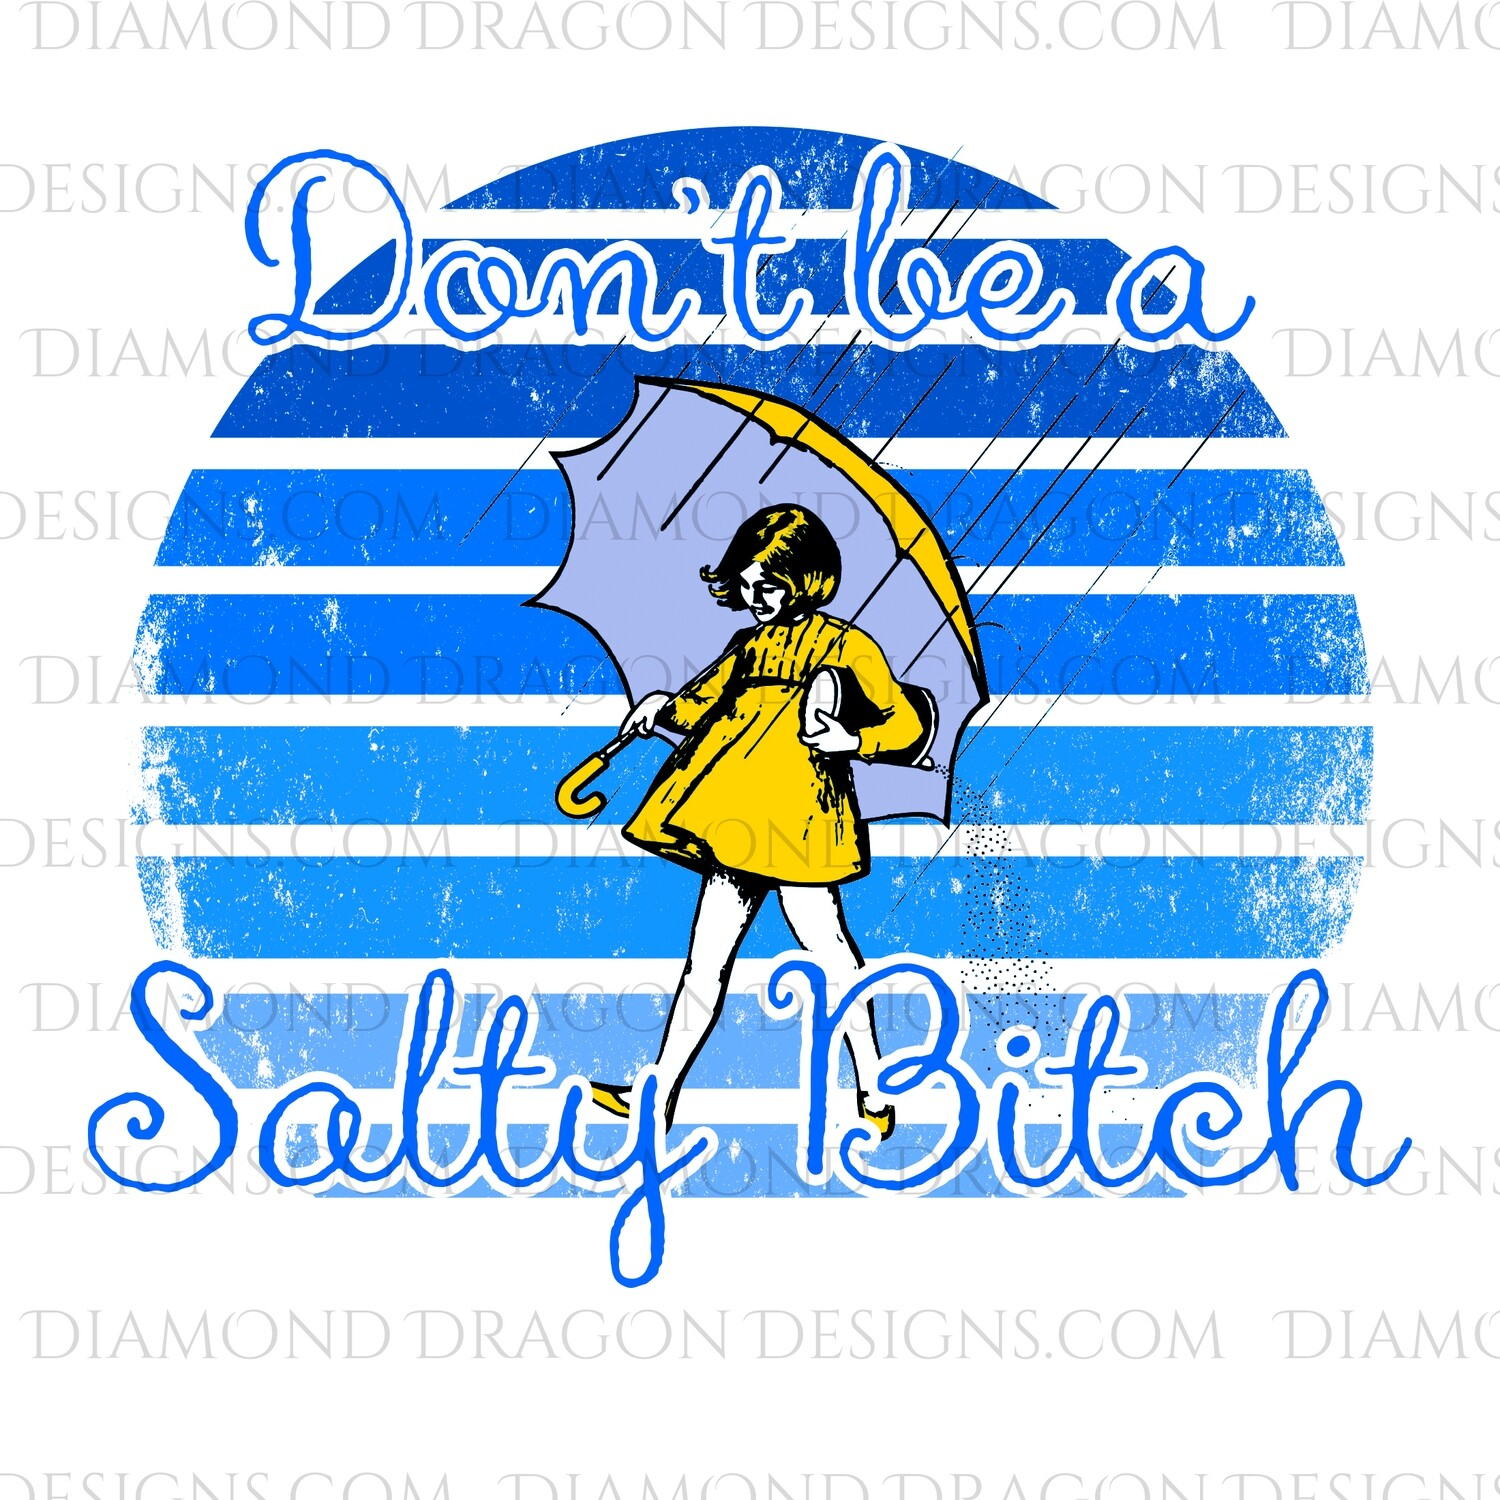 Quotes - Yellow, Don't Be a Salty Bitch, Vintage, Digital Image